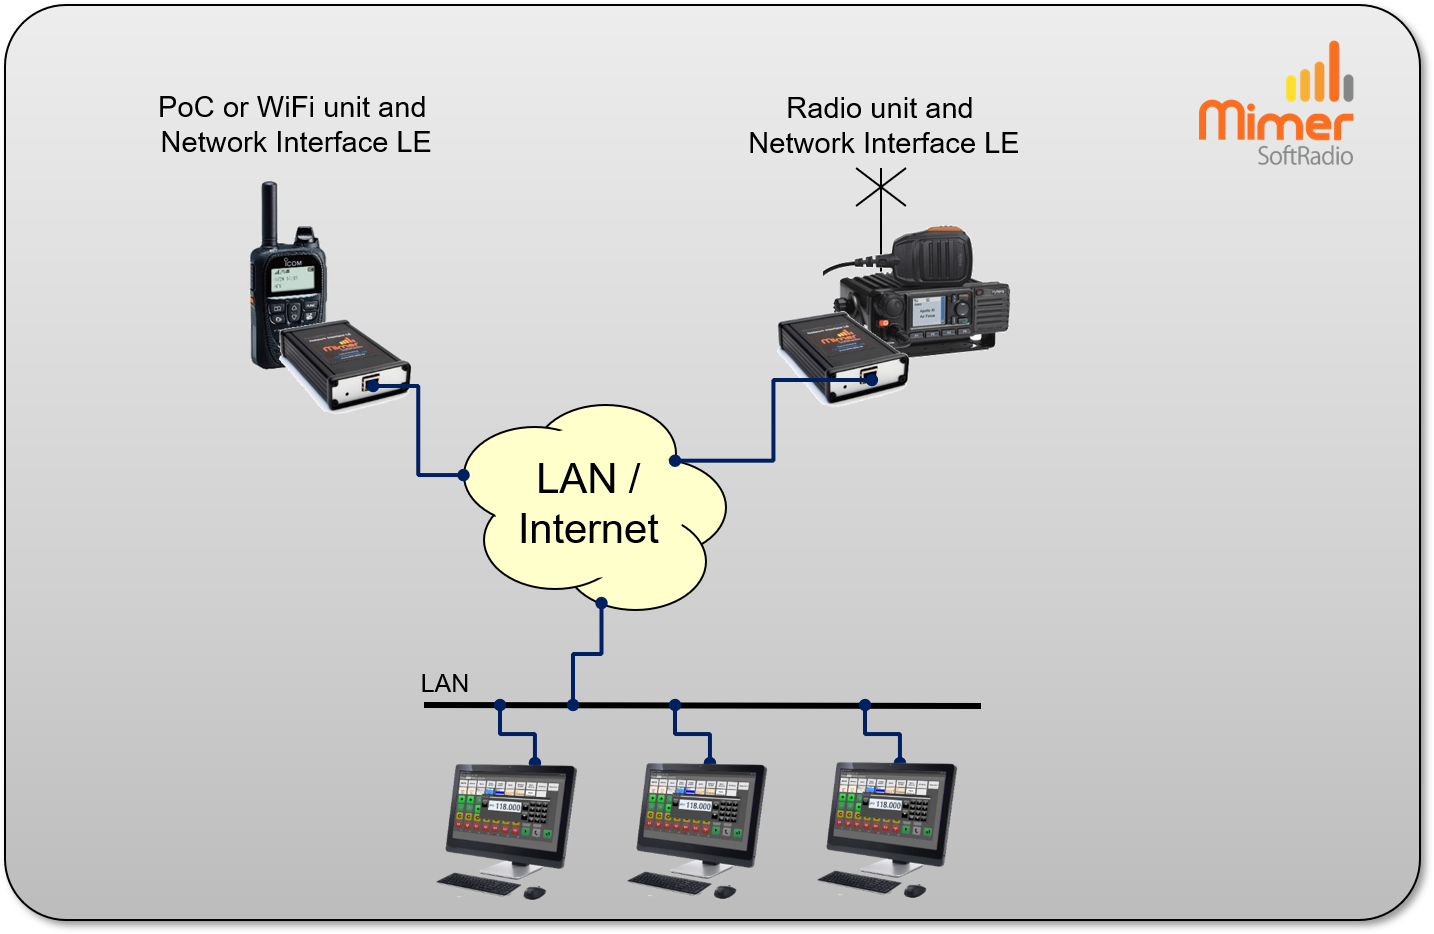 A PoC/WiFi radio and a standard radio remote controlled by to three operators